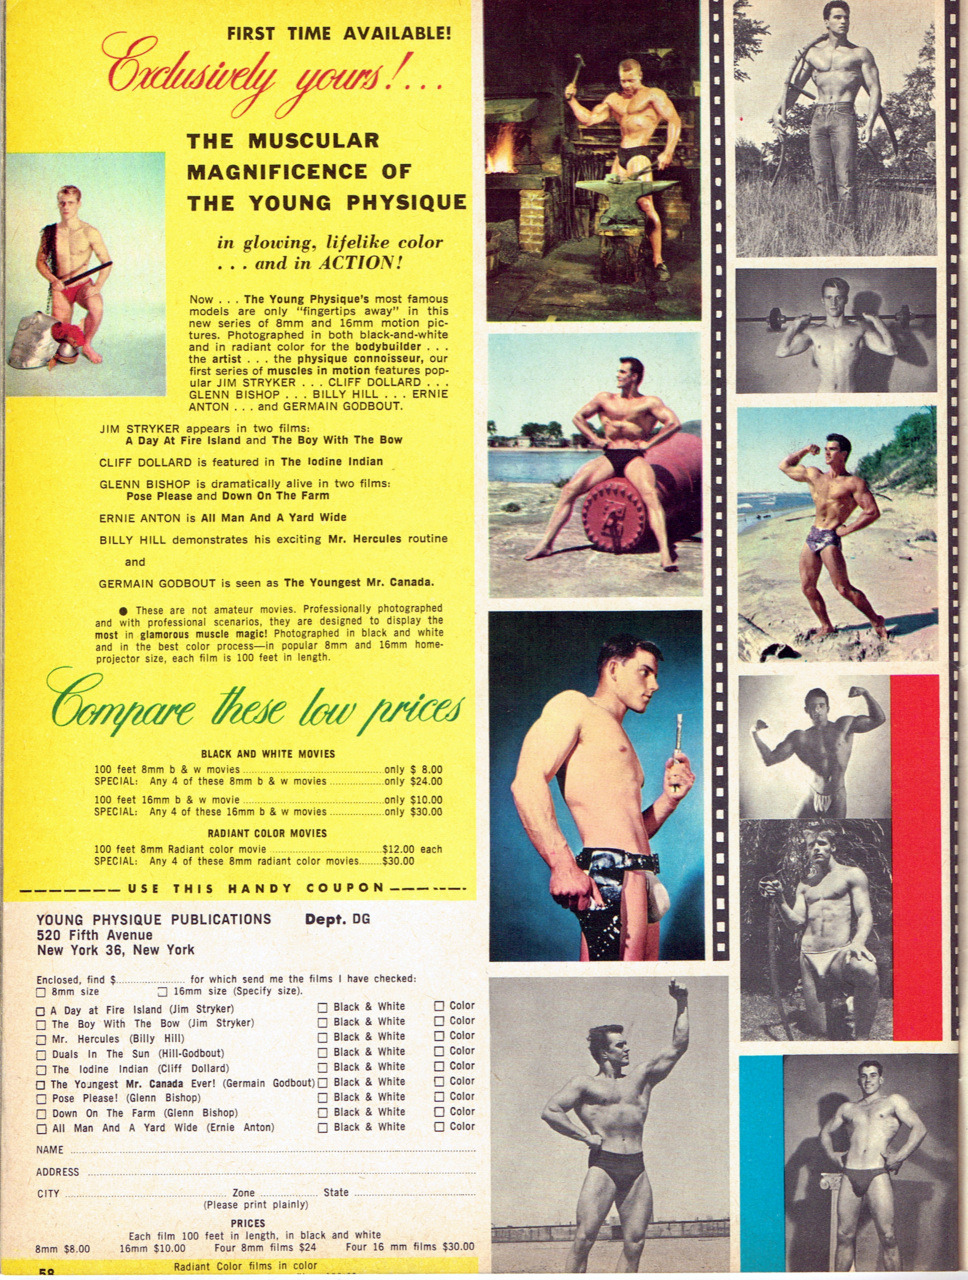 Young Physique Publications ad, 1962